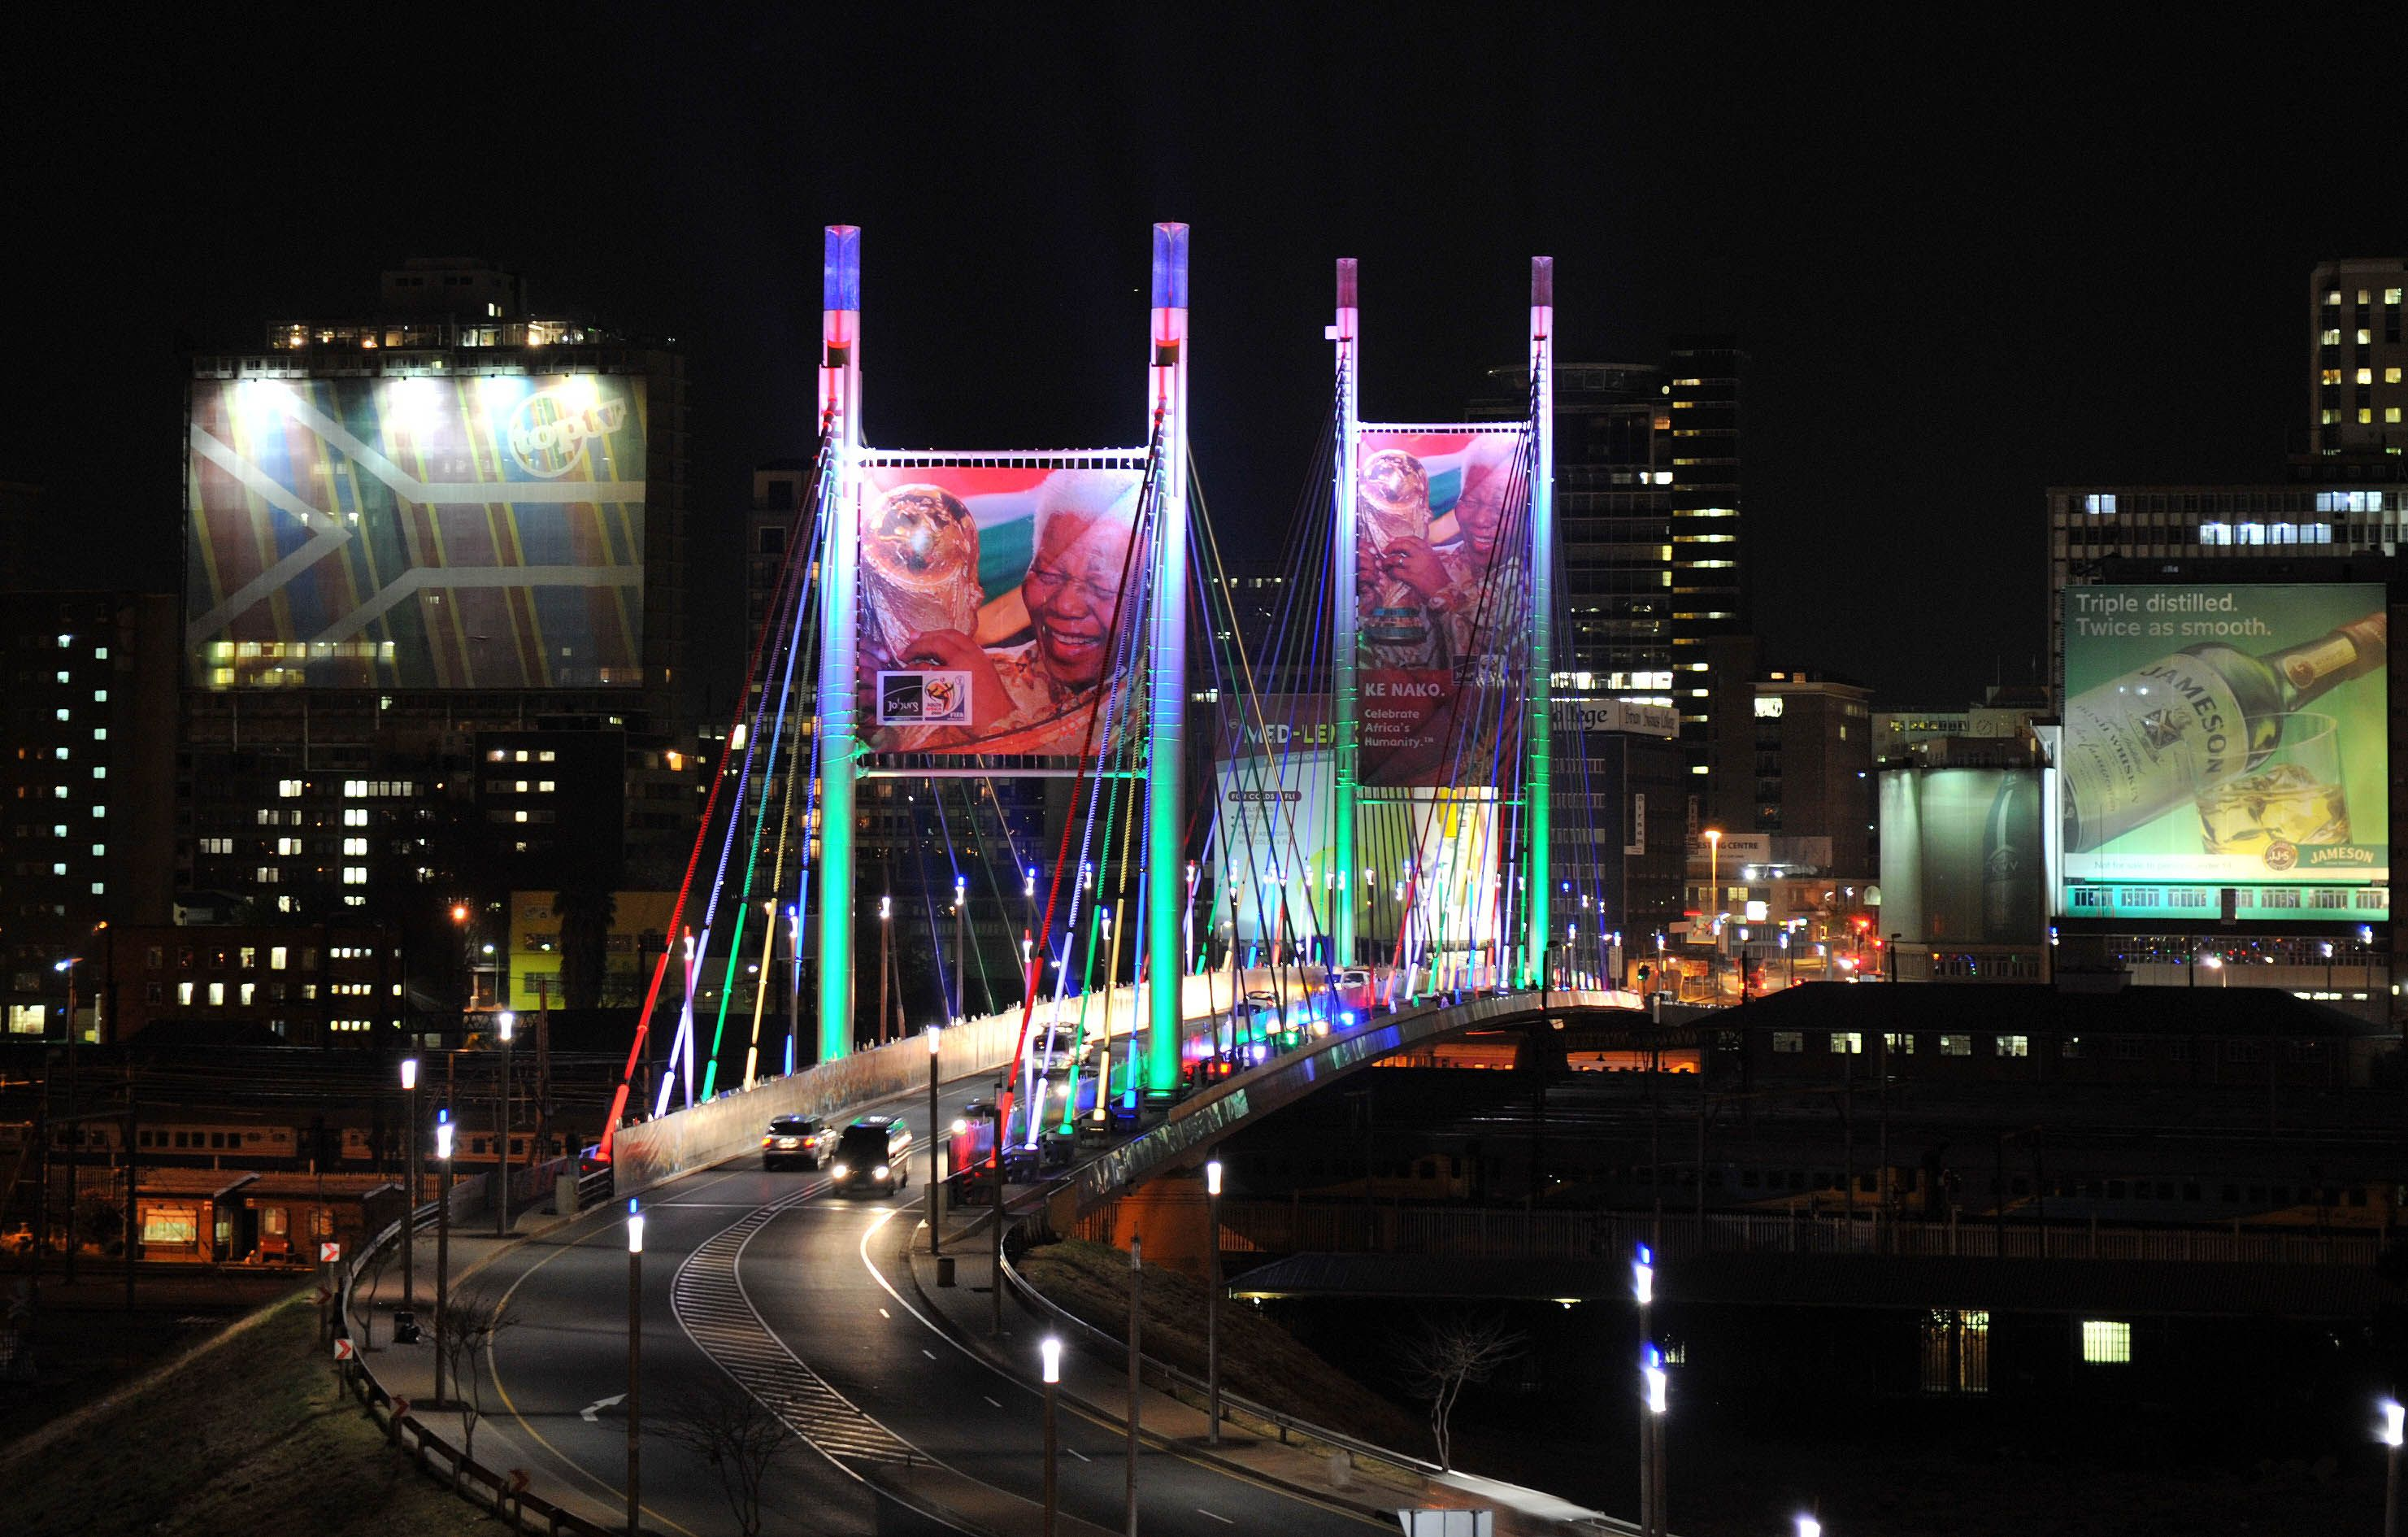 Nelson Mandela Bridge, Johannesburg, South Africa.  ColorReach Powercore fixtures transformed the bridge at night in a colorful, yet sustainable way.  To promote unity, cultural exchange and economic growth, the LED lighting solution brings together two disparate economic areas.